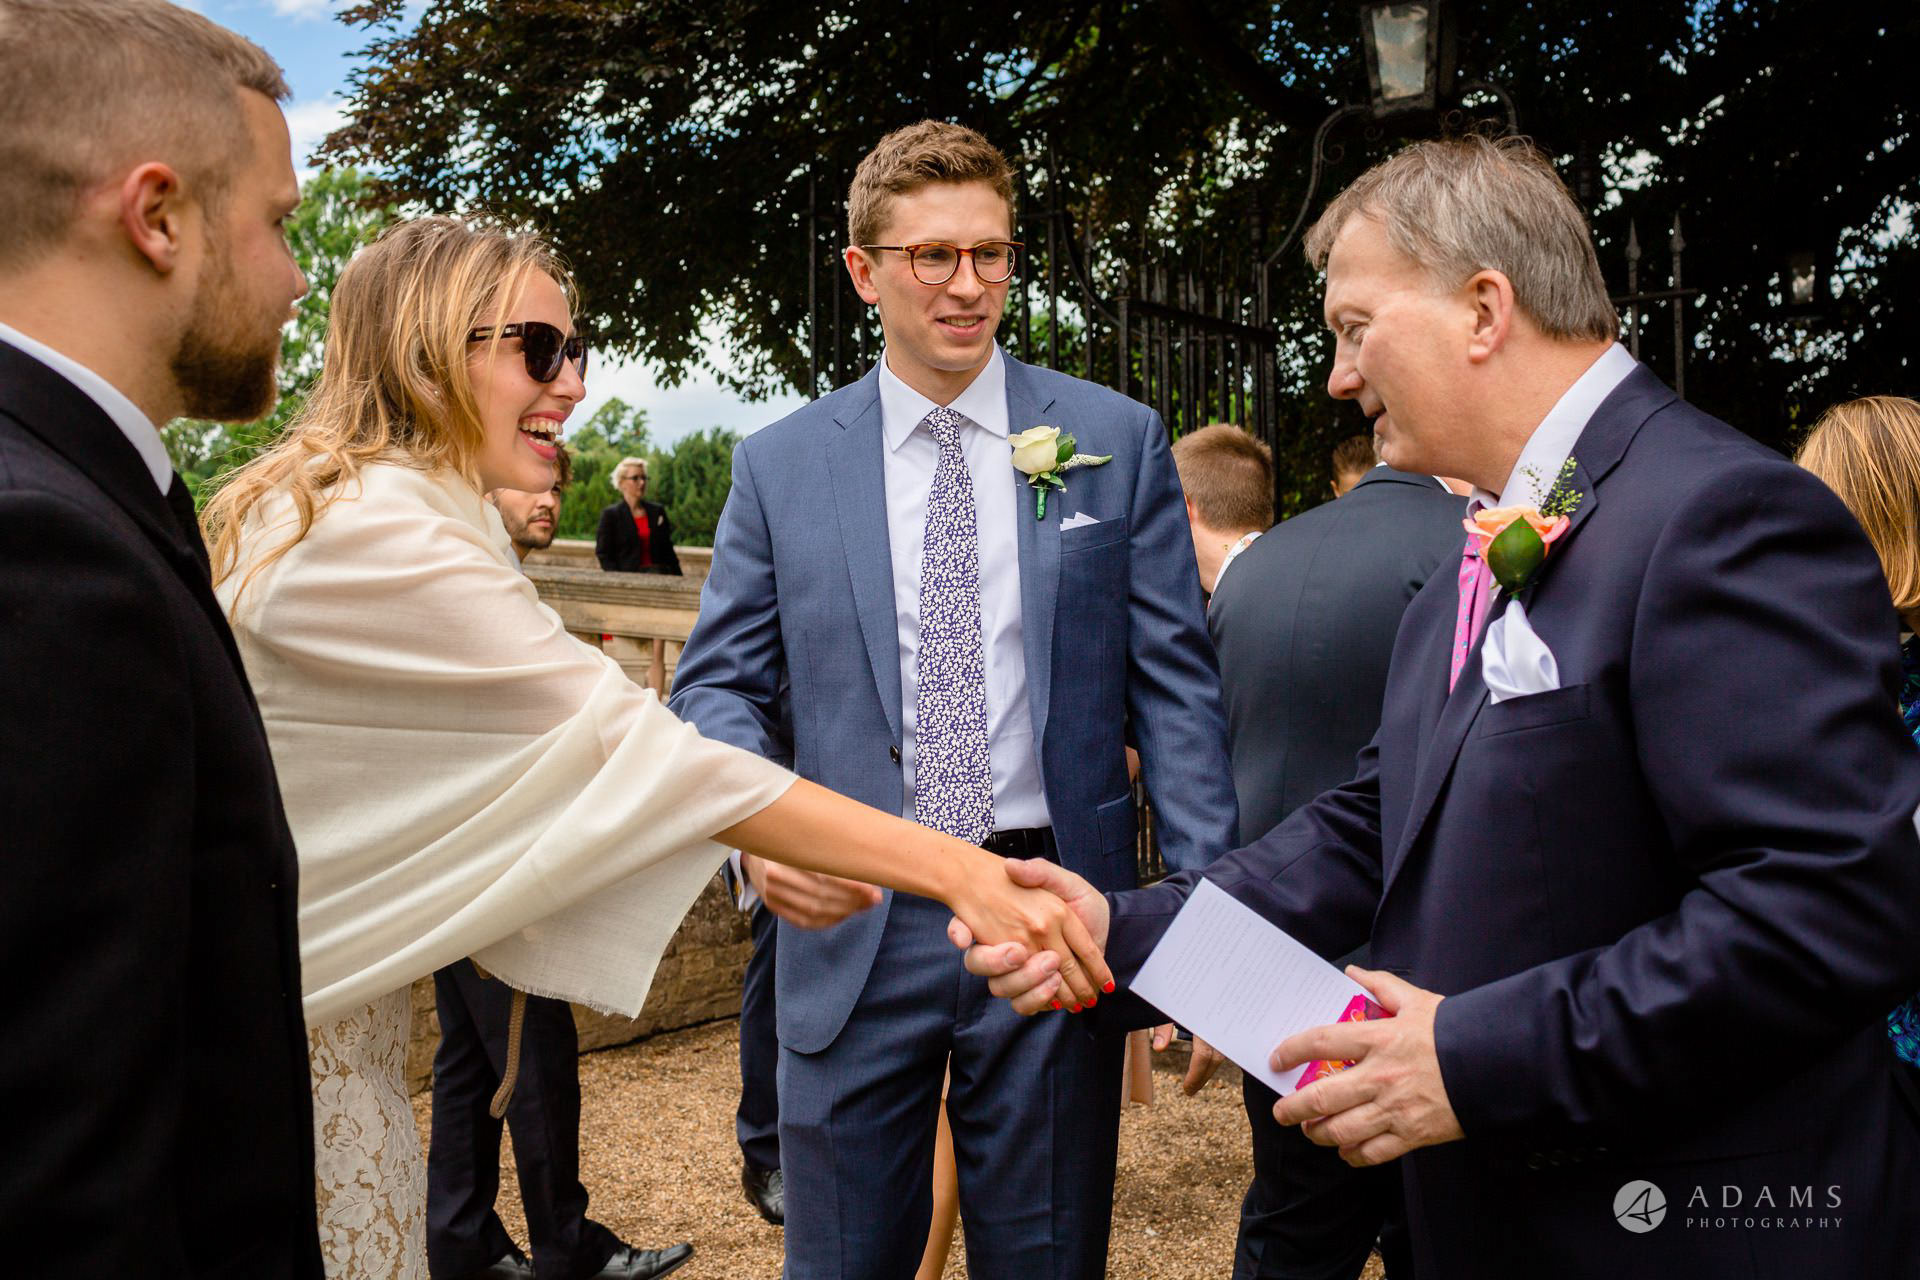 Clare College wedding guests shaking hands